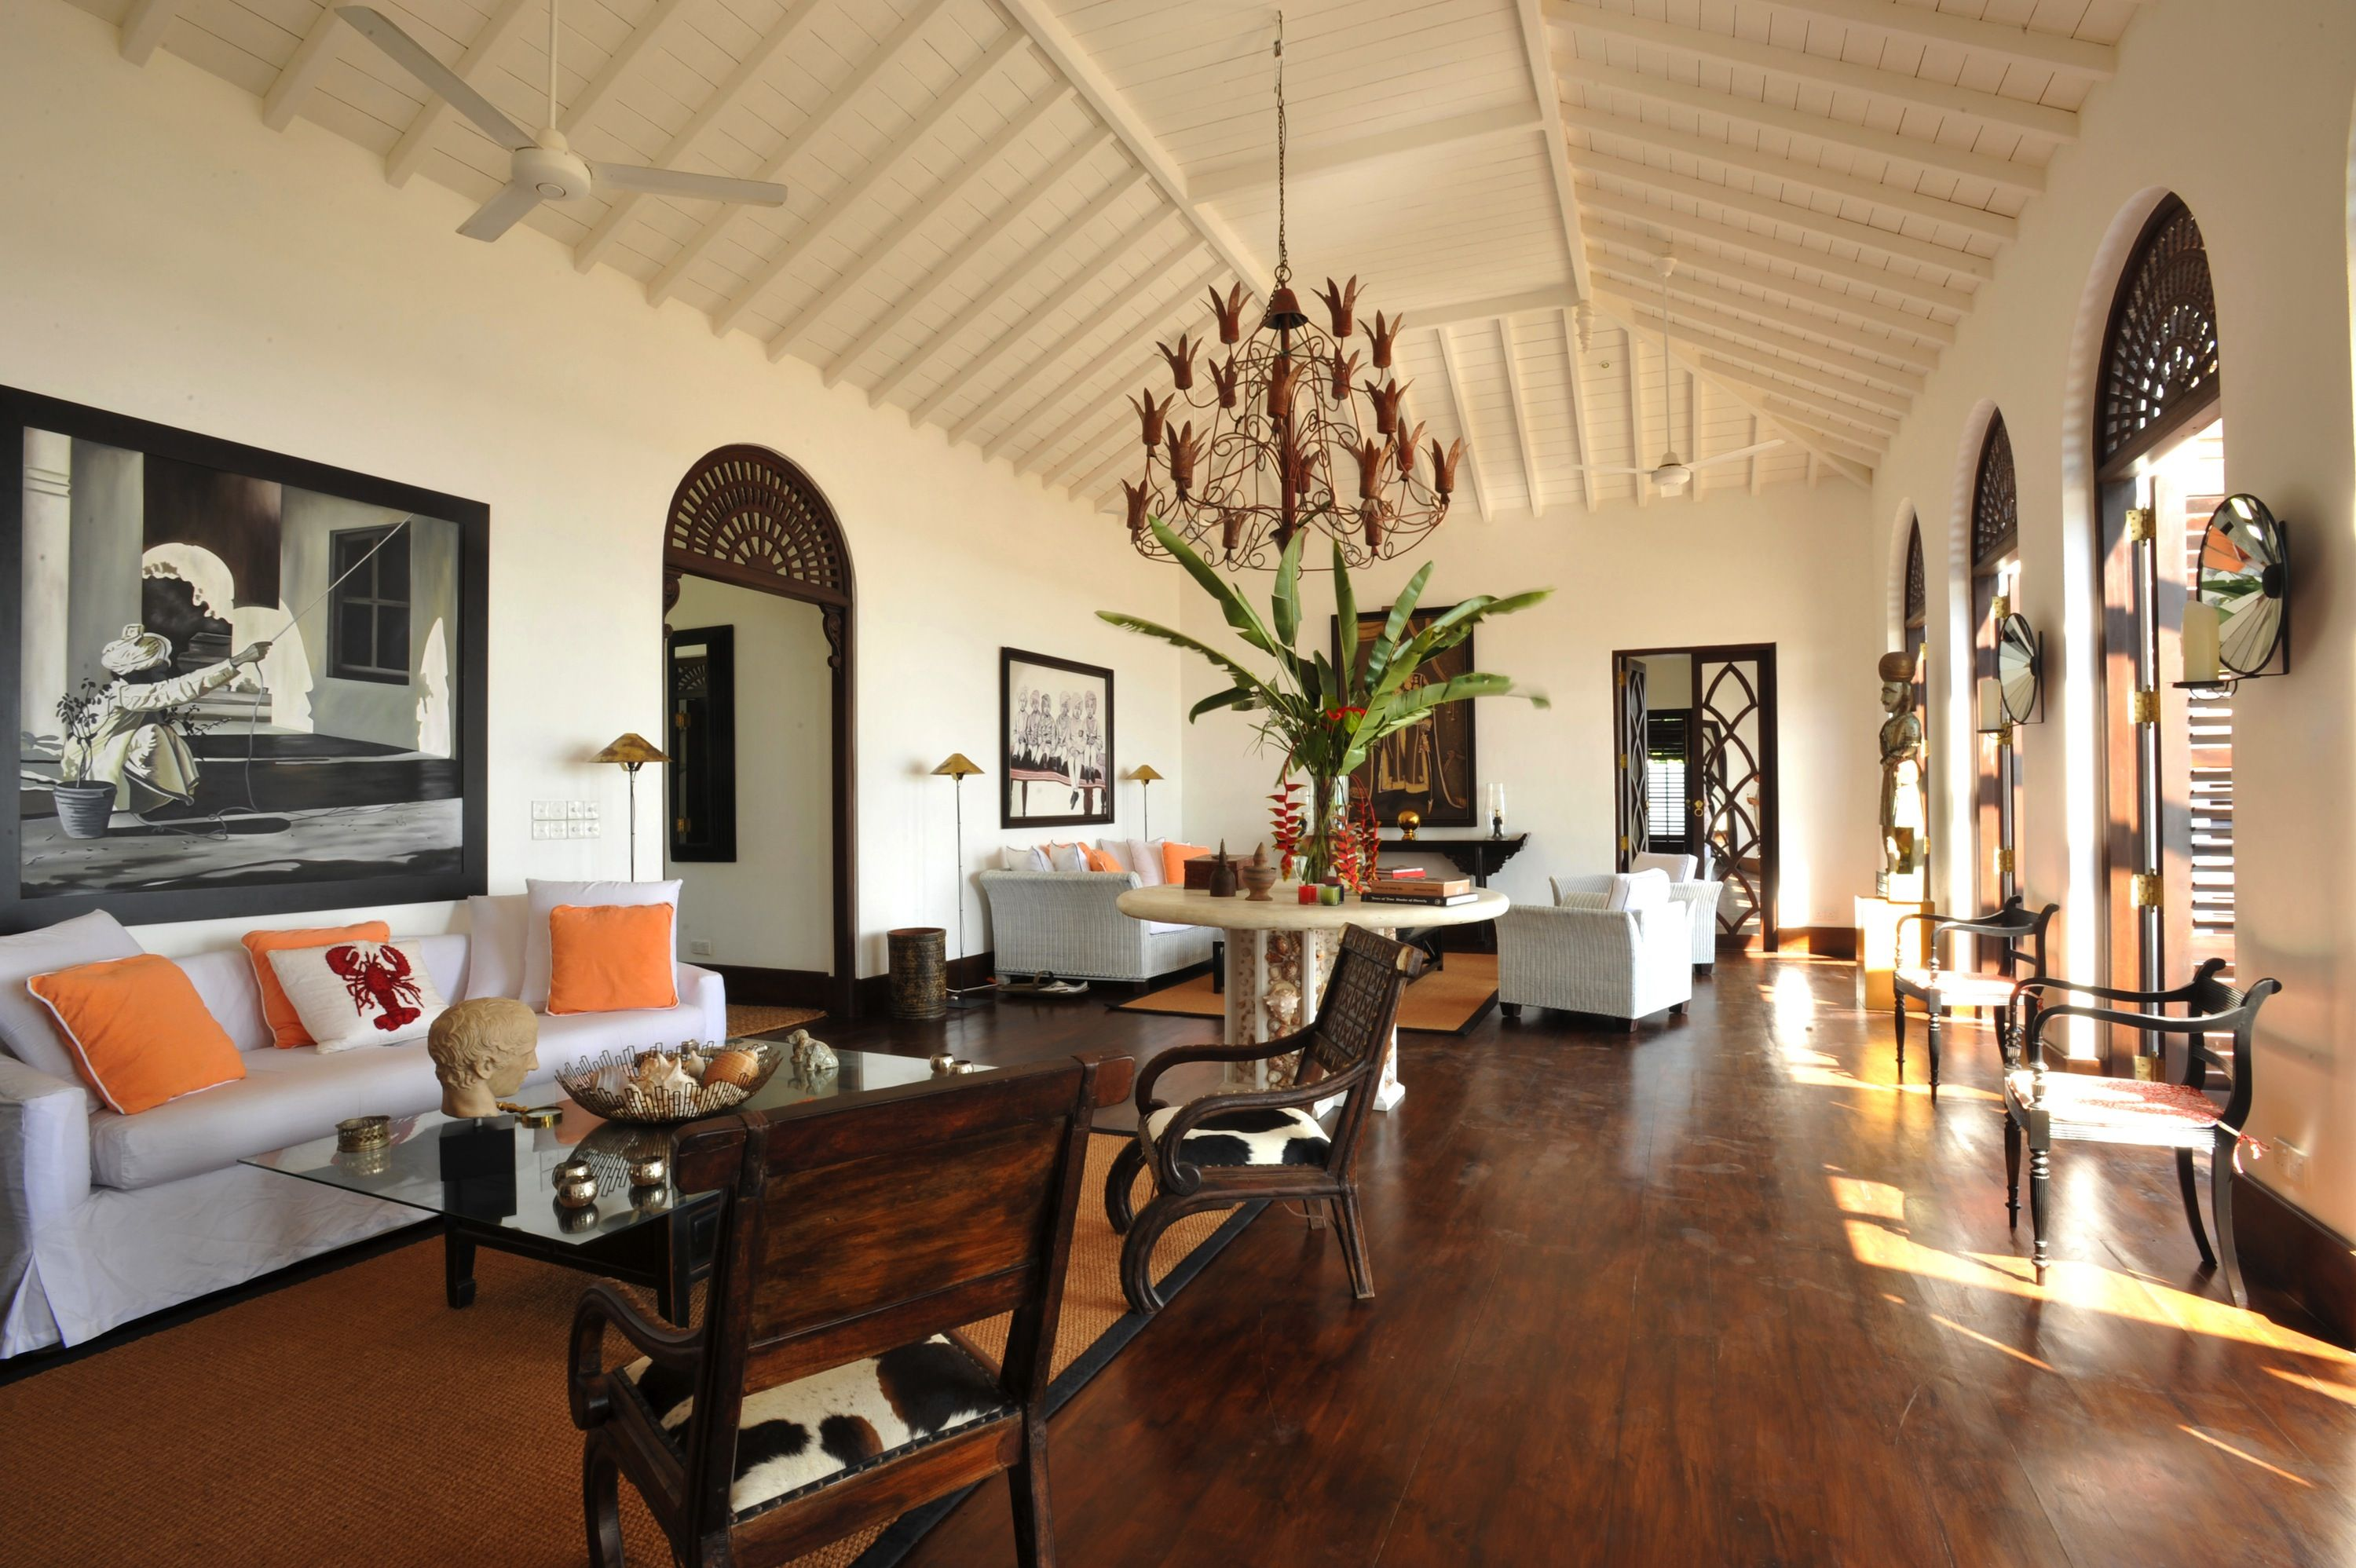 Michael la rocca and jack kellys sri lankan vacation home tropical yet upscale living room